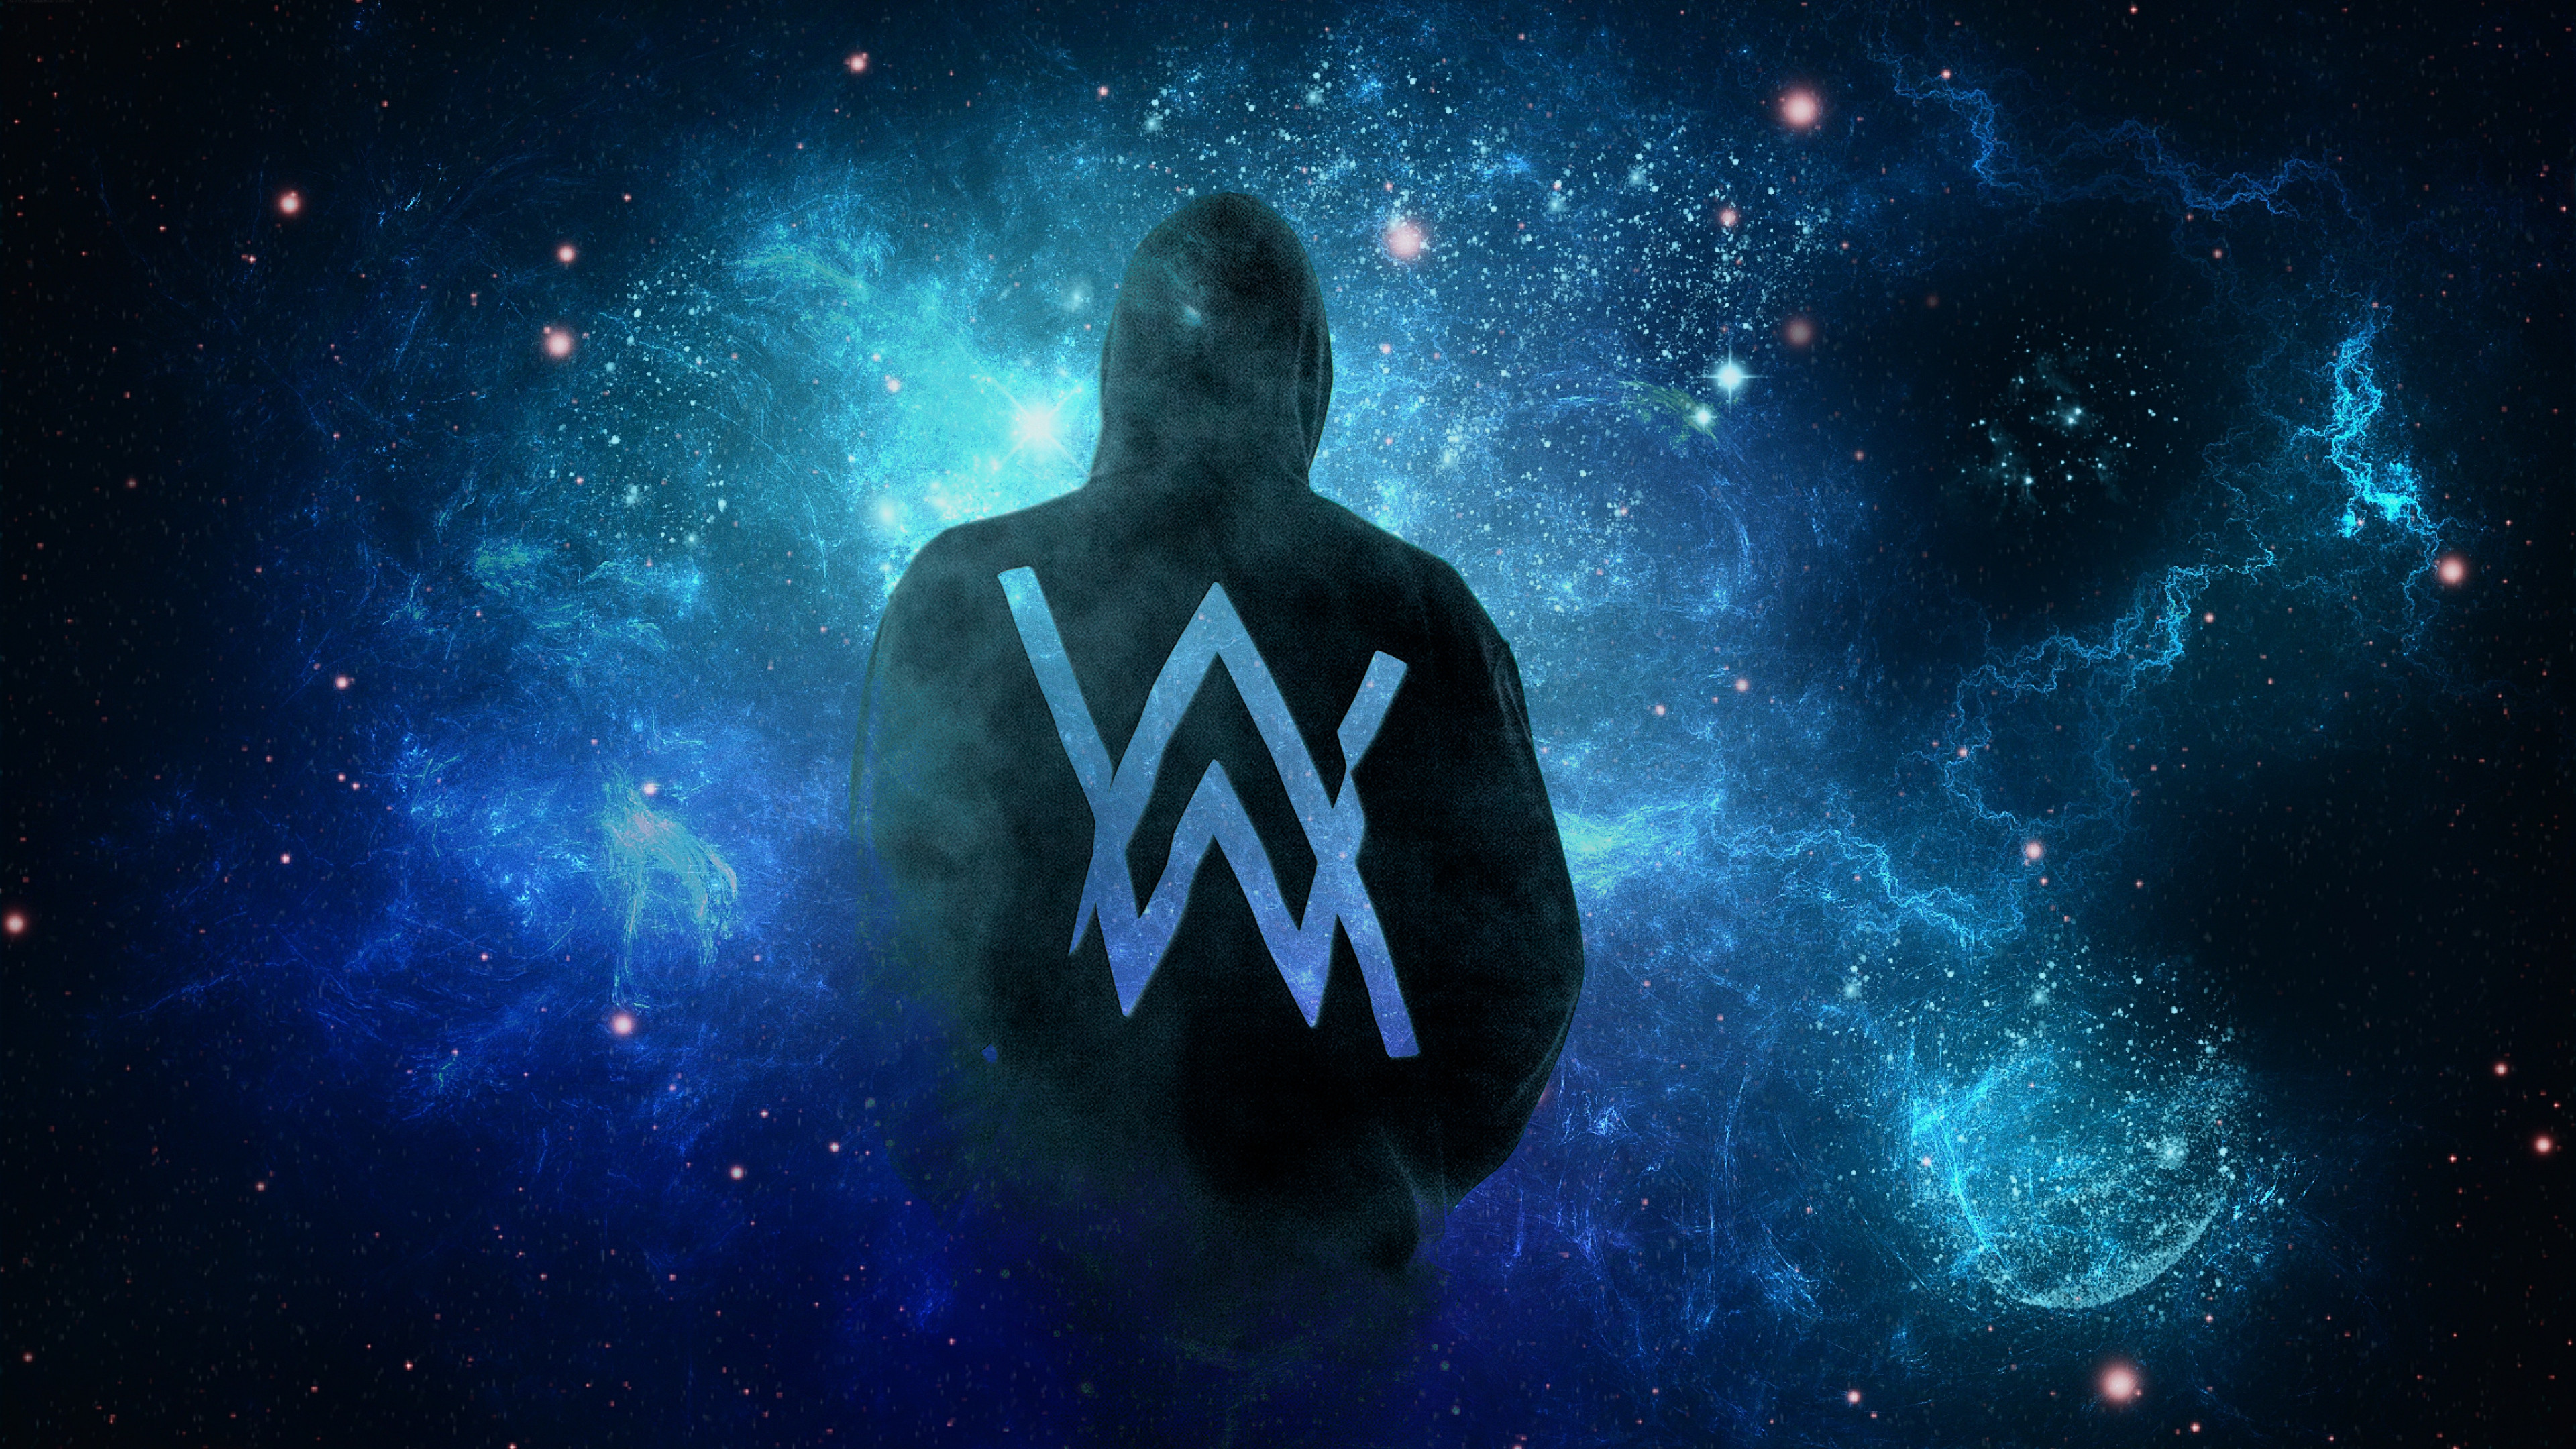 5 Alan Walker HD Wallpapers Background Images 3840x2160